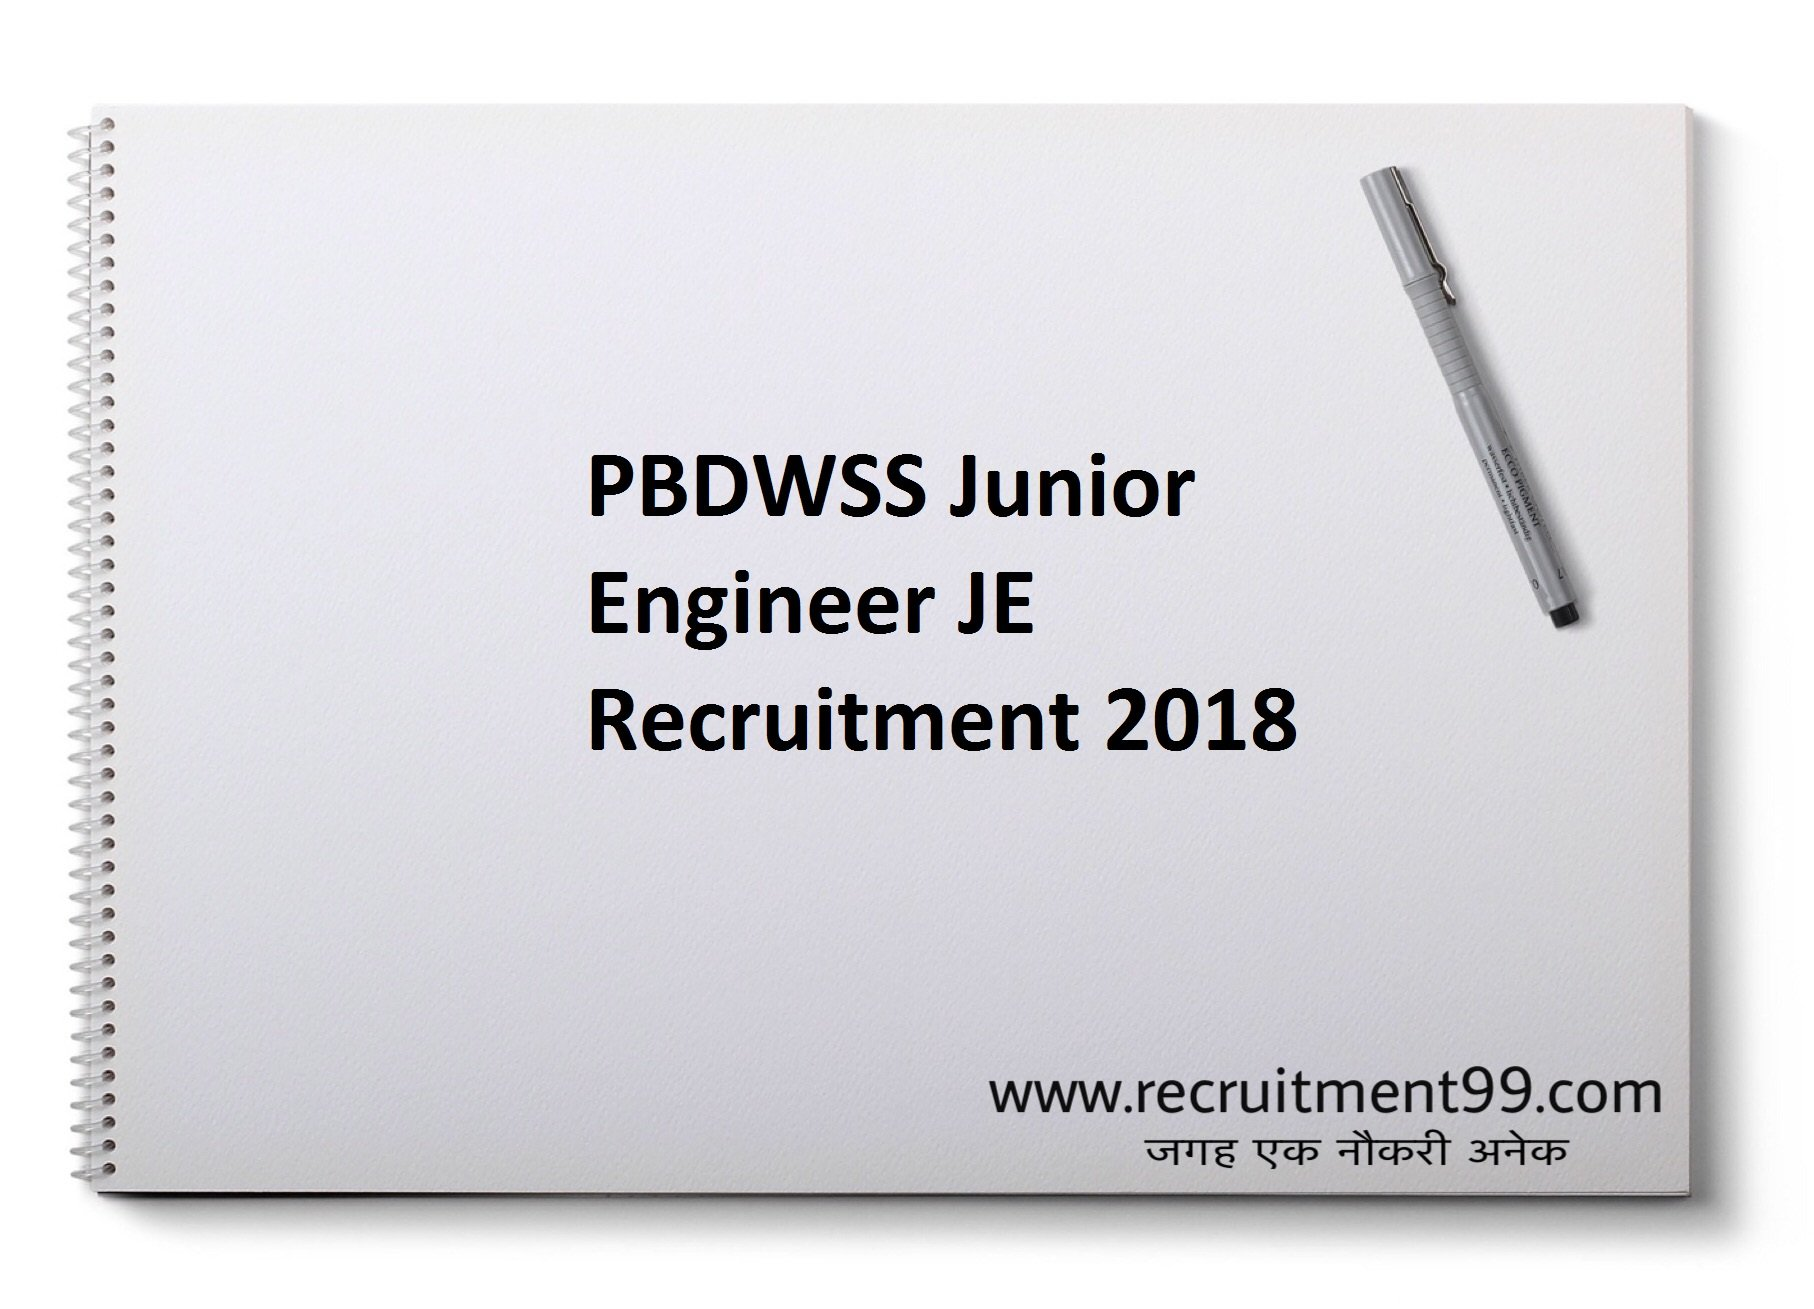 PBDWSS Junior Engineer JE Recruitment Admit Card Result 2018